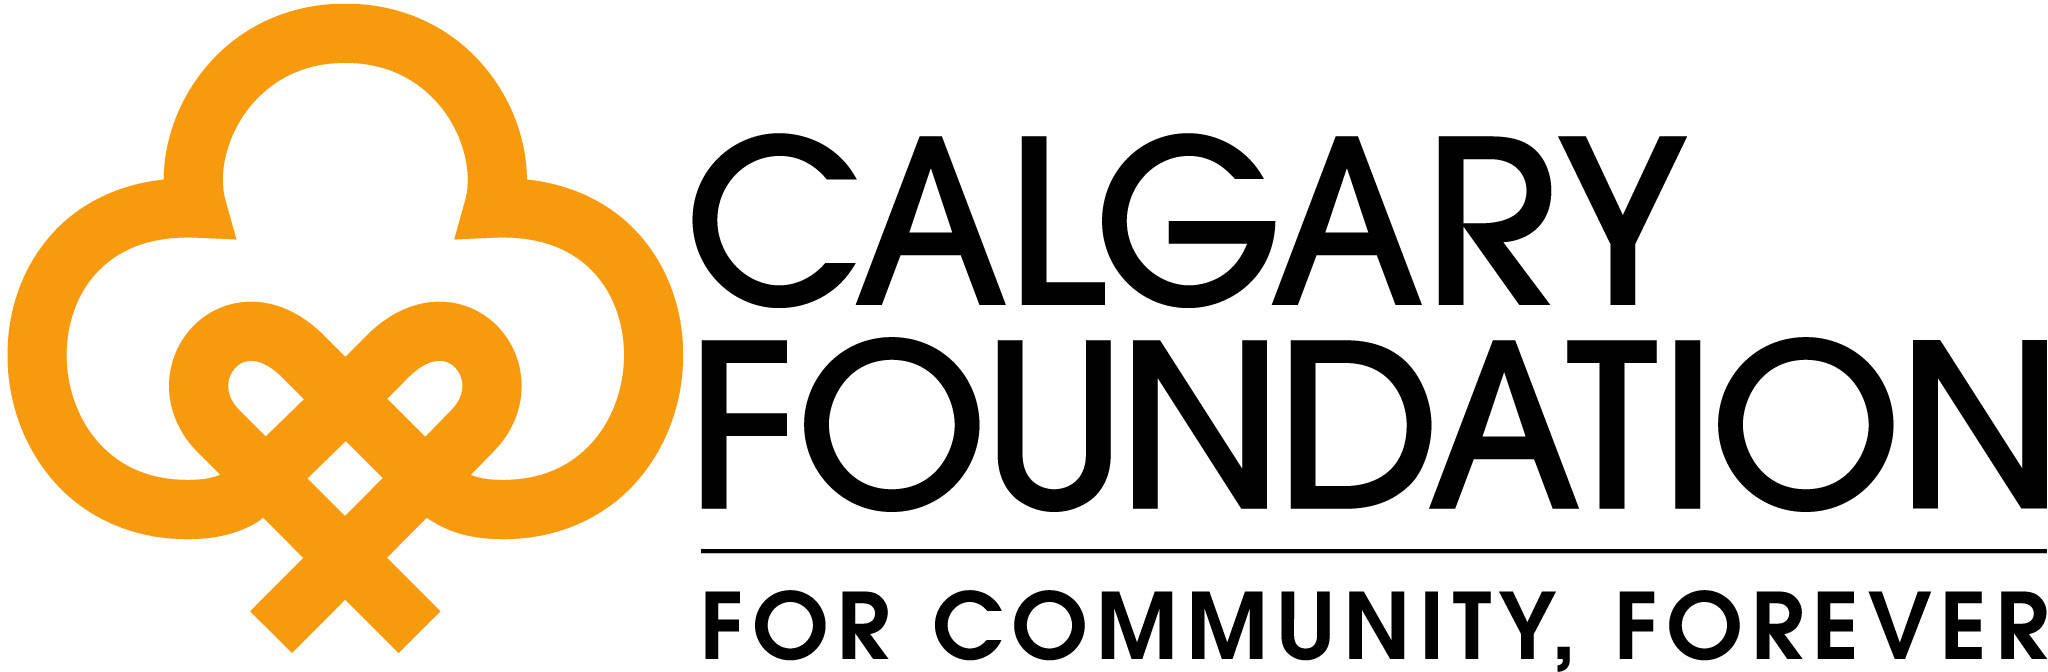 calgary_foundation-1.jpg